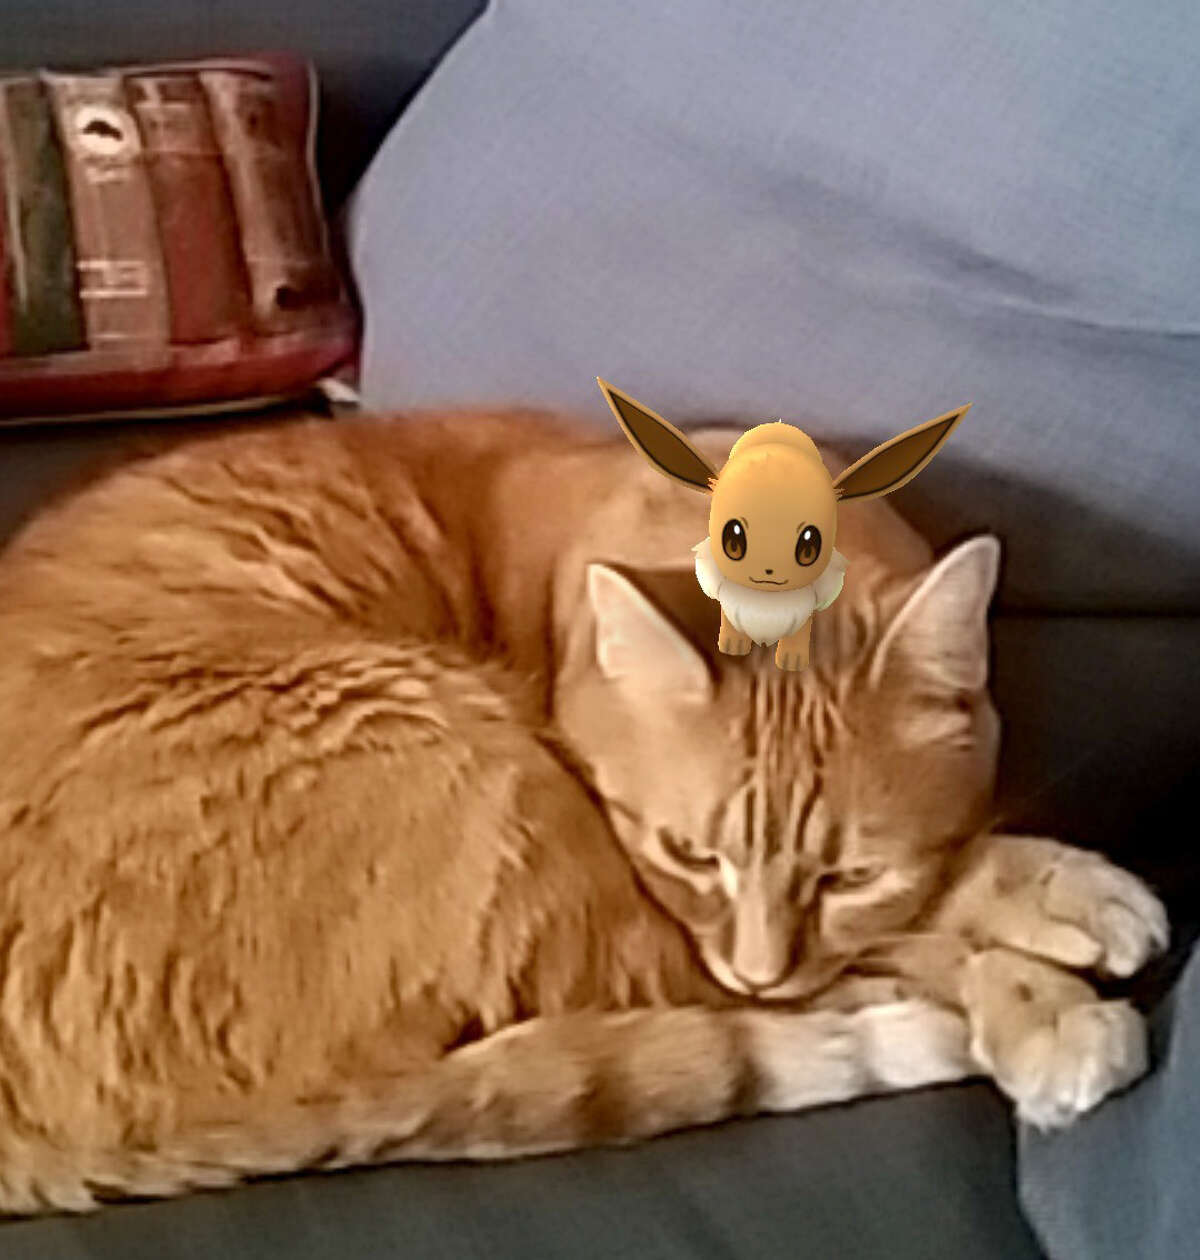 Pokémon Go characters show up when viewed through a users smartphone camera.